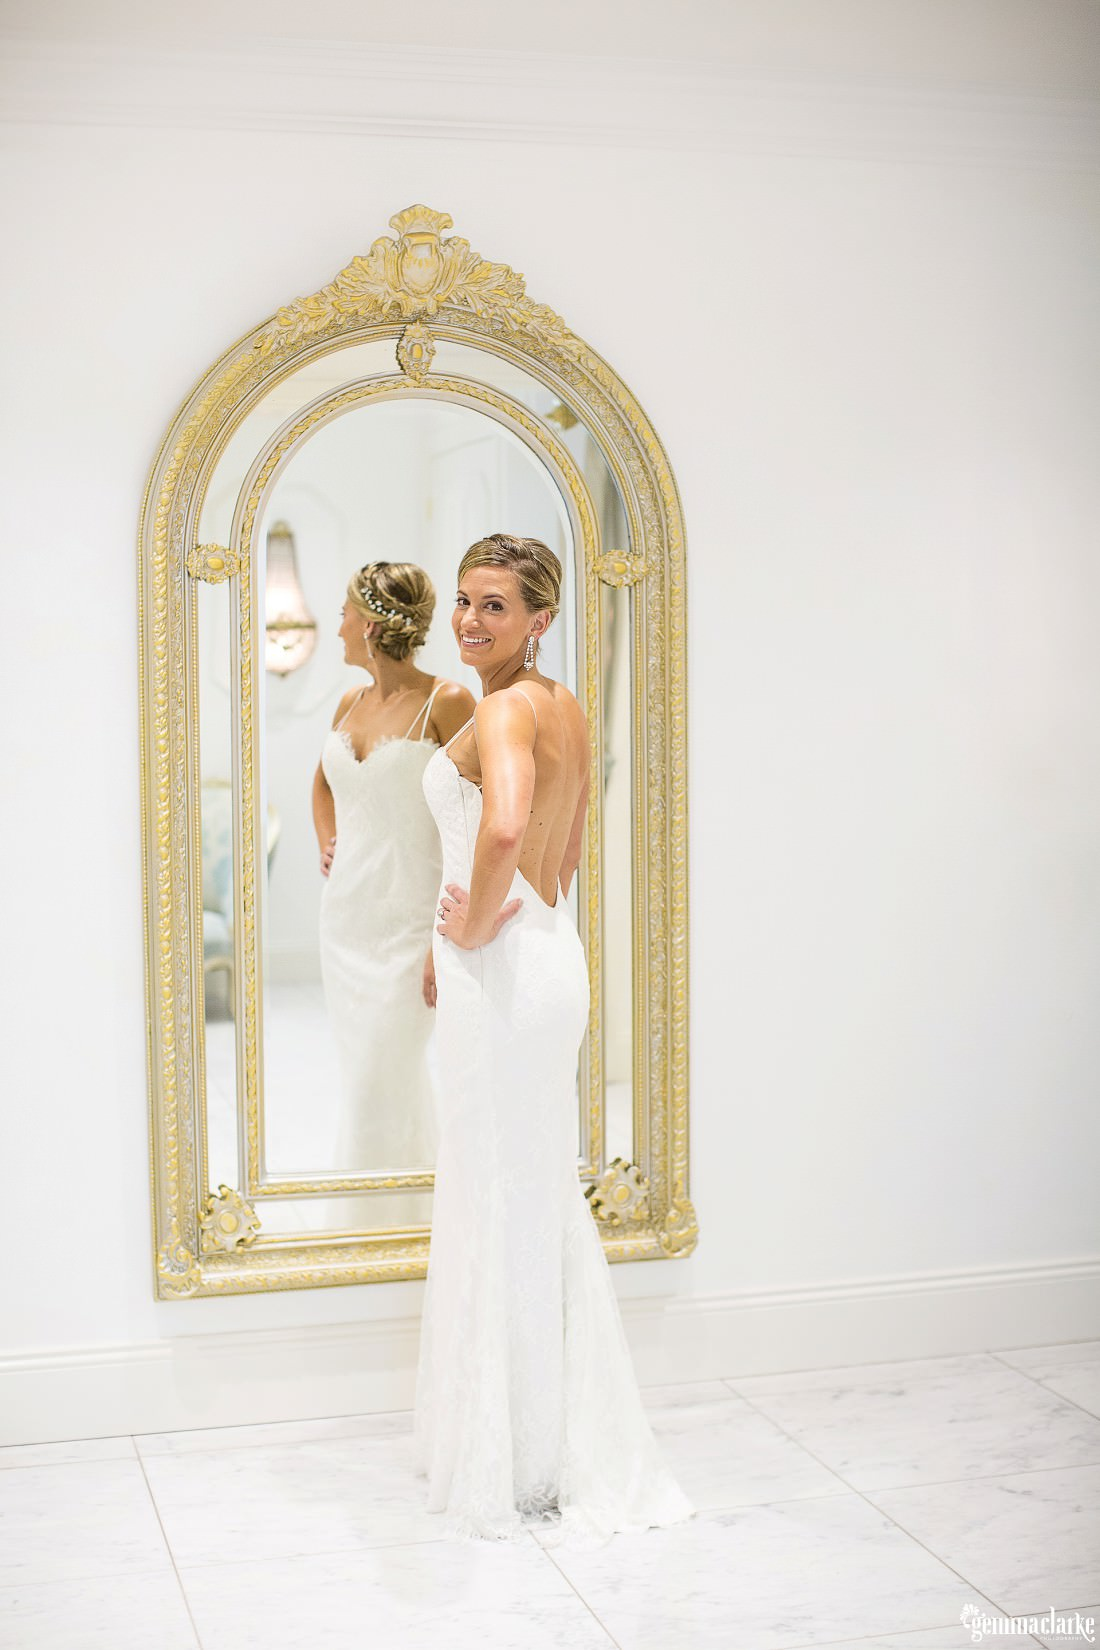 Bride posing in front of a gold framed mirror - Jaspers Wedding